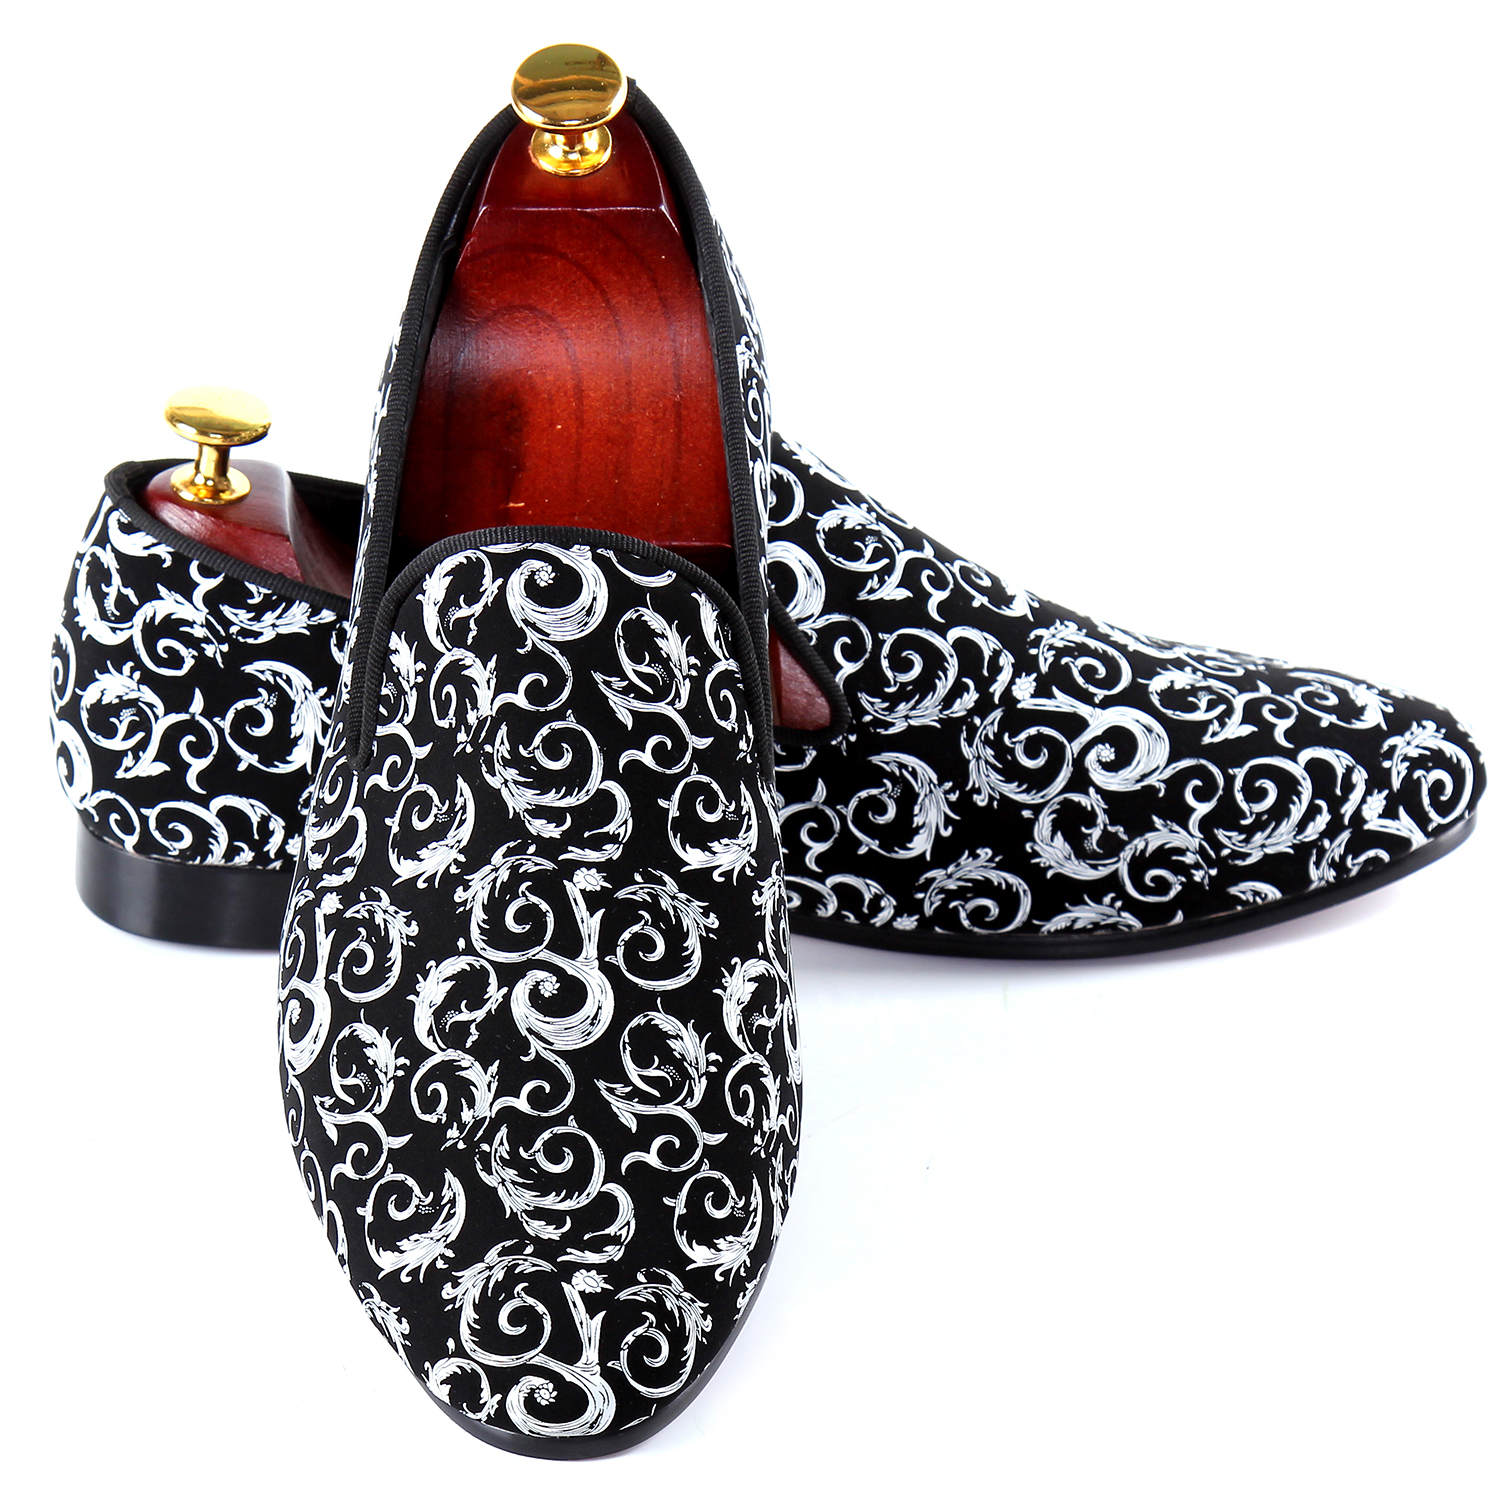 Harpelunde Men Moccasin Shoes Paisley Printed Driving Loafers British Leisure Shoes Size 7-14 manitobah мокаксины sunshine moccasin женские бежевый